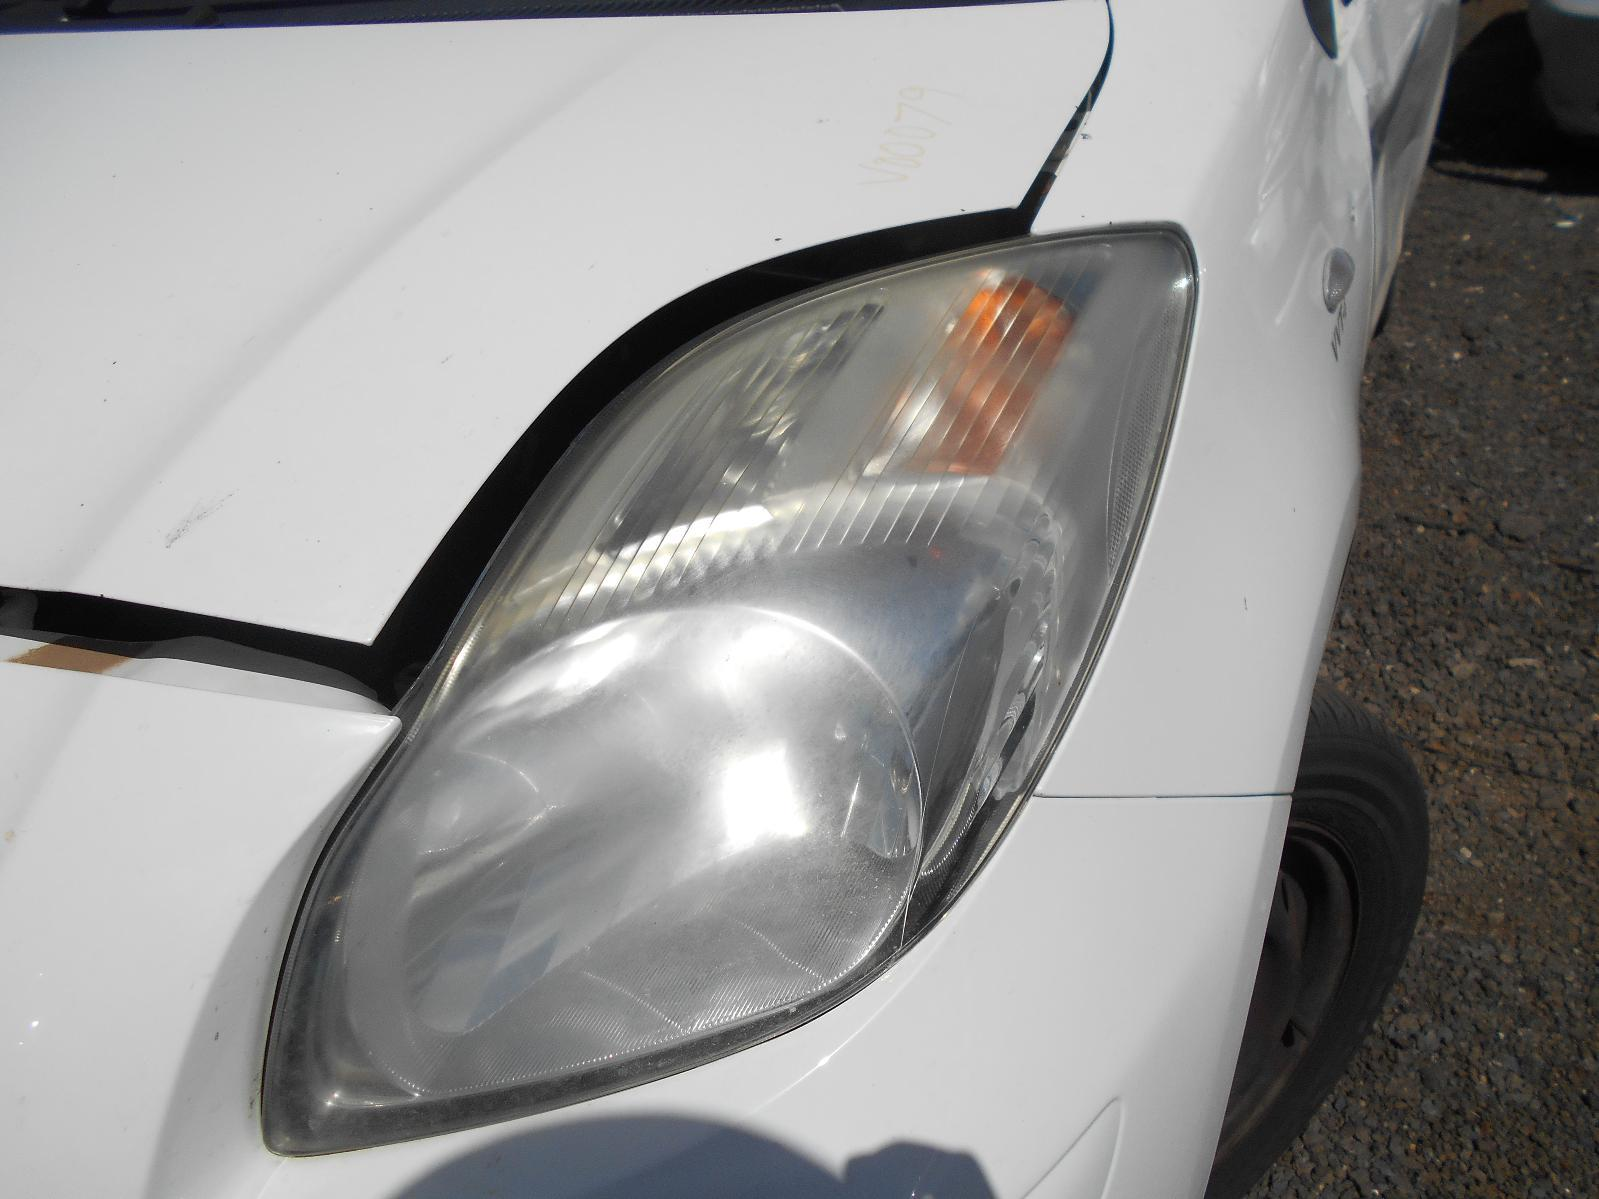 TOYOTA YARIS, Left Headlamp, NCP9#, HATCH, NON HID, ELECT ADJ, LENS# 52-184, 10/08-10/11